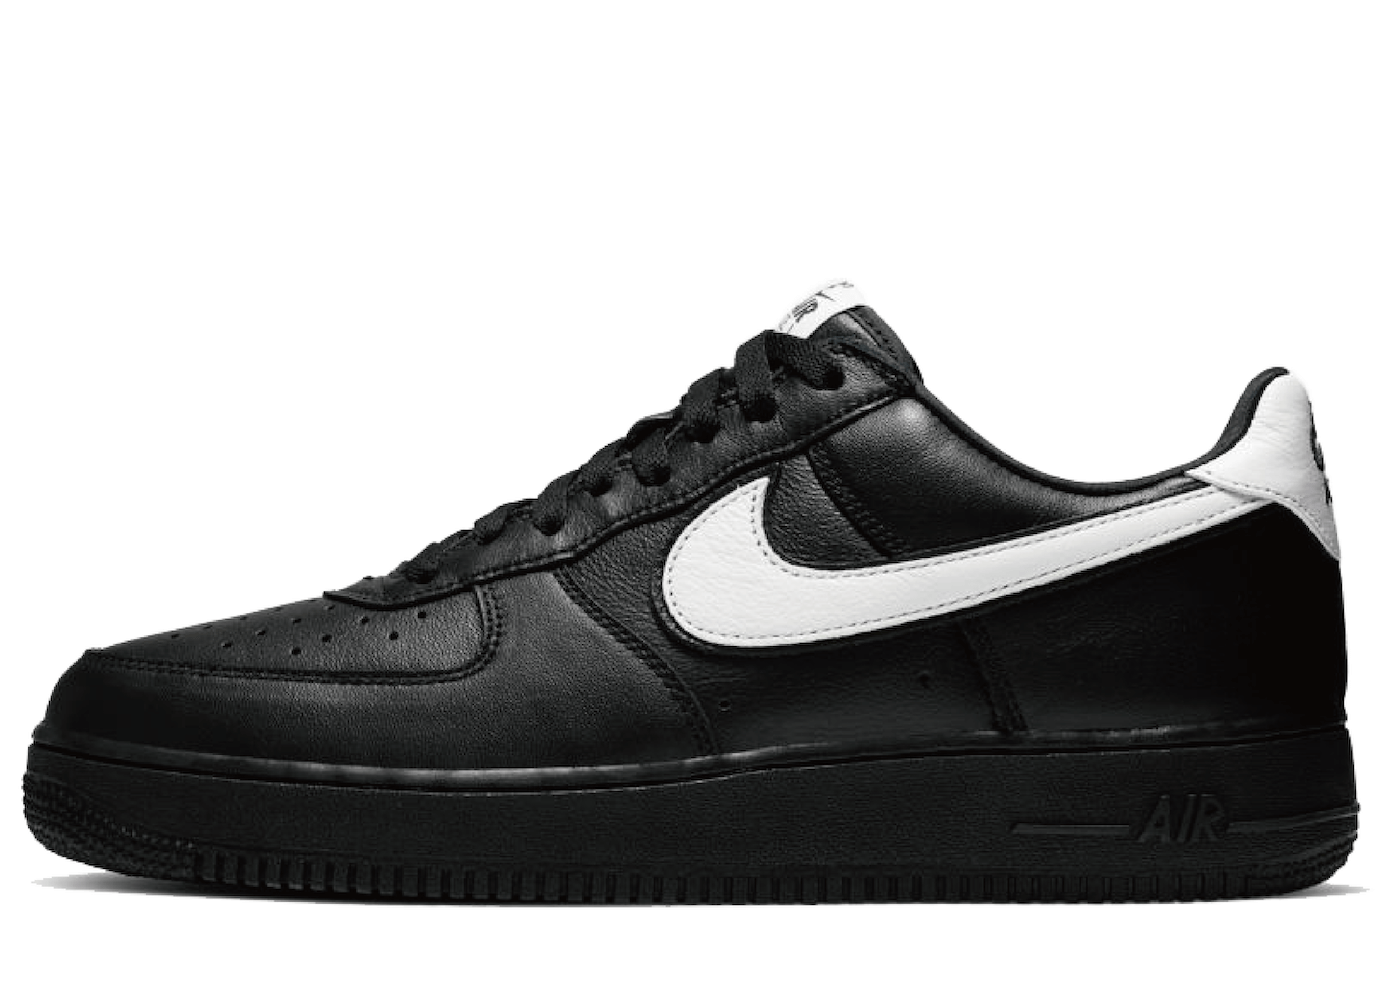 Nike Air Force 1 Low QS Black Whiteの写真